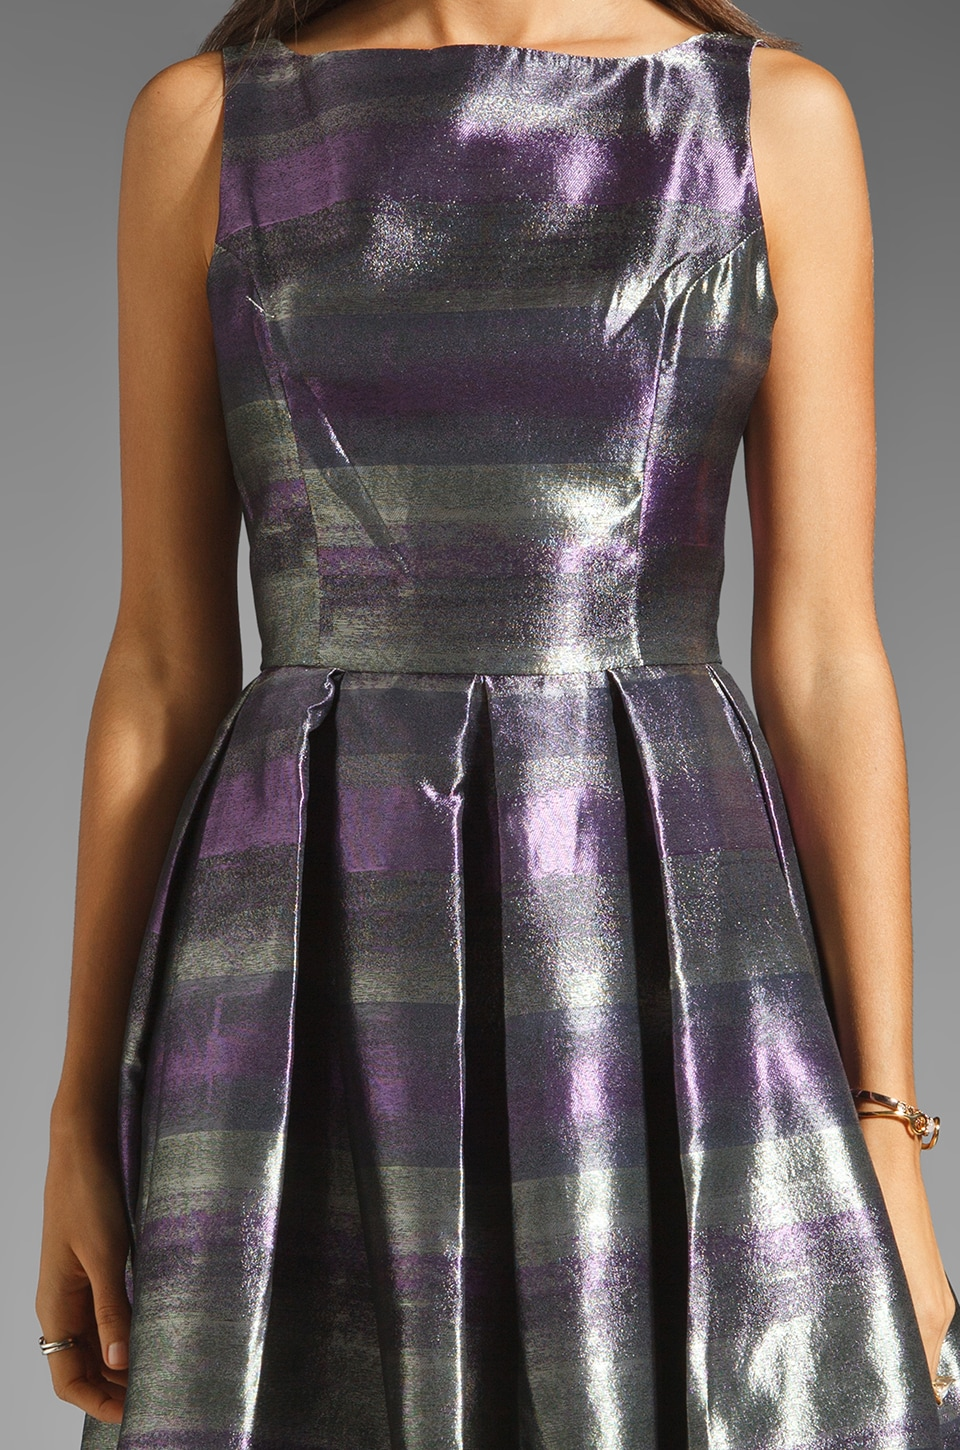 BB Dakota Jensine Horizons Jacquard Dress in Purple